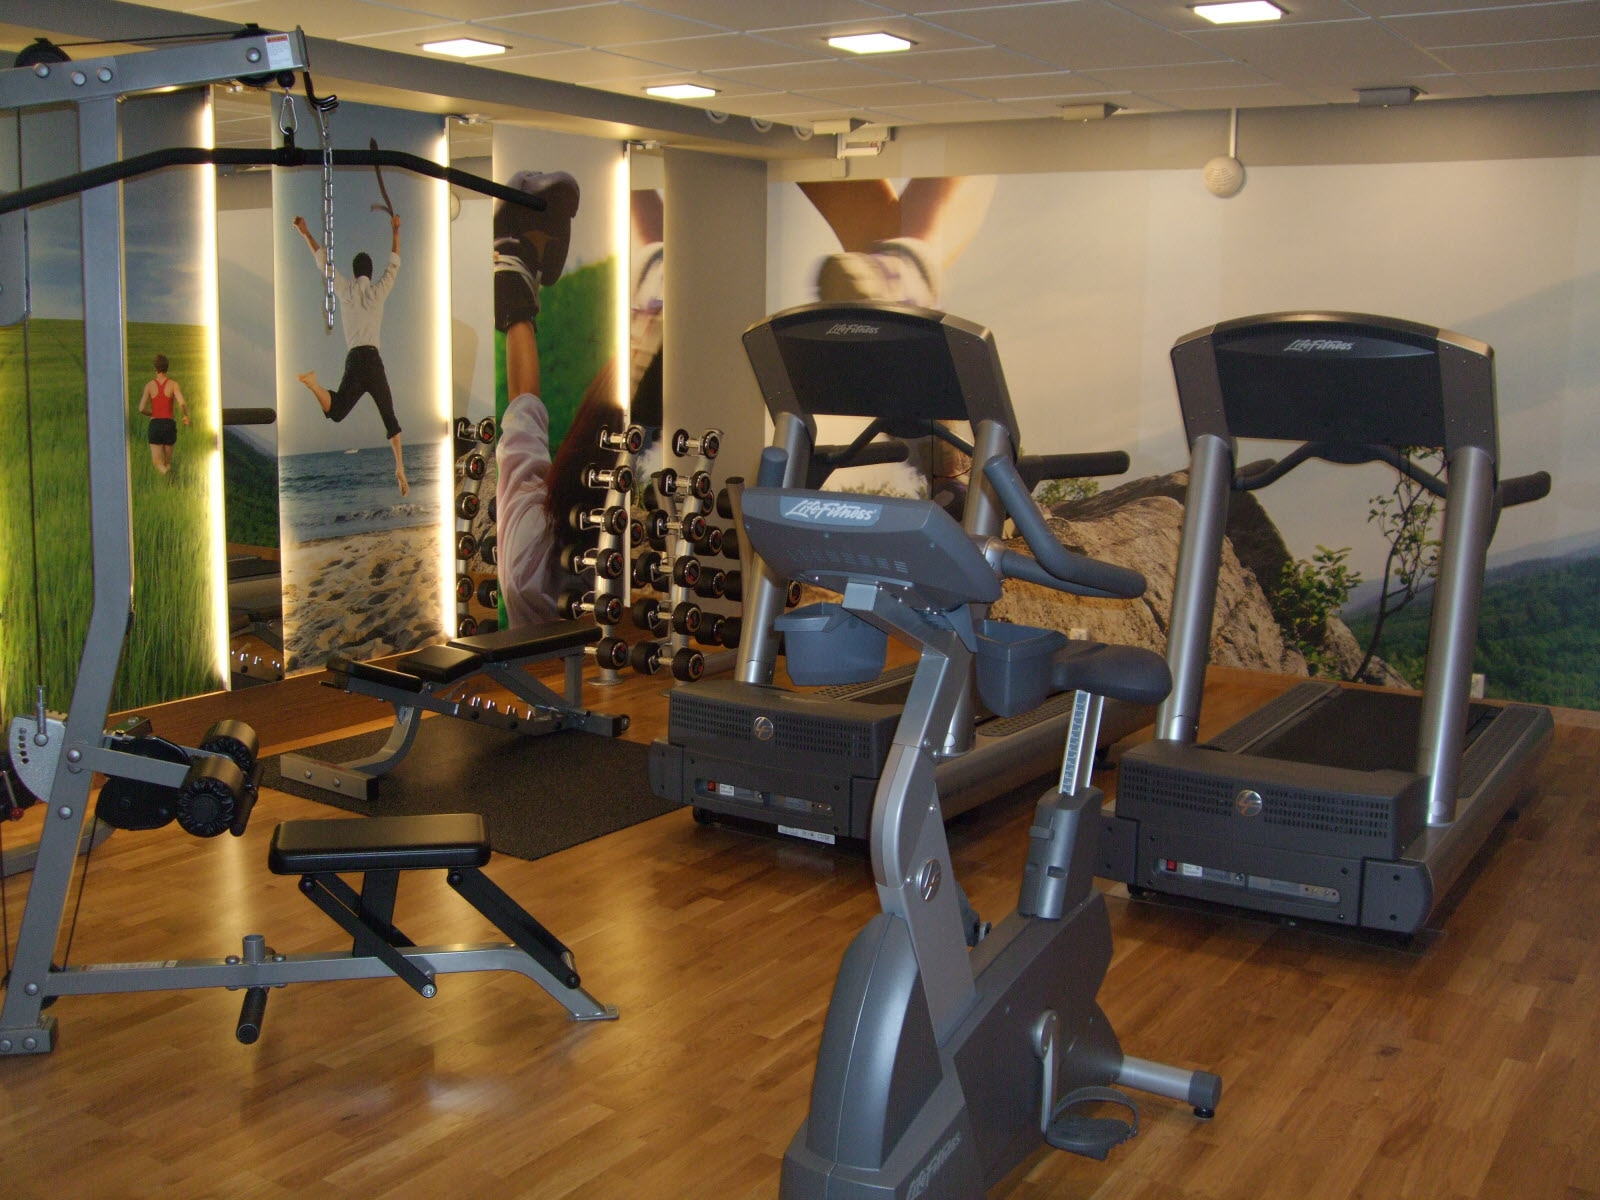 Scandic Segevång, gym